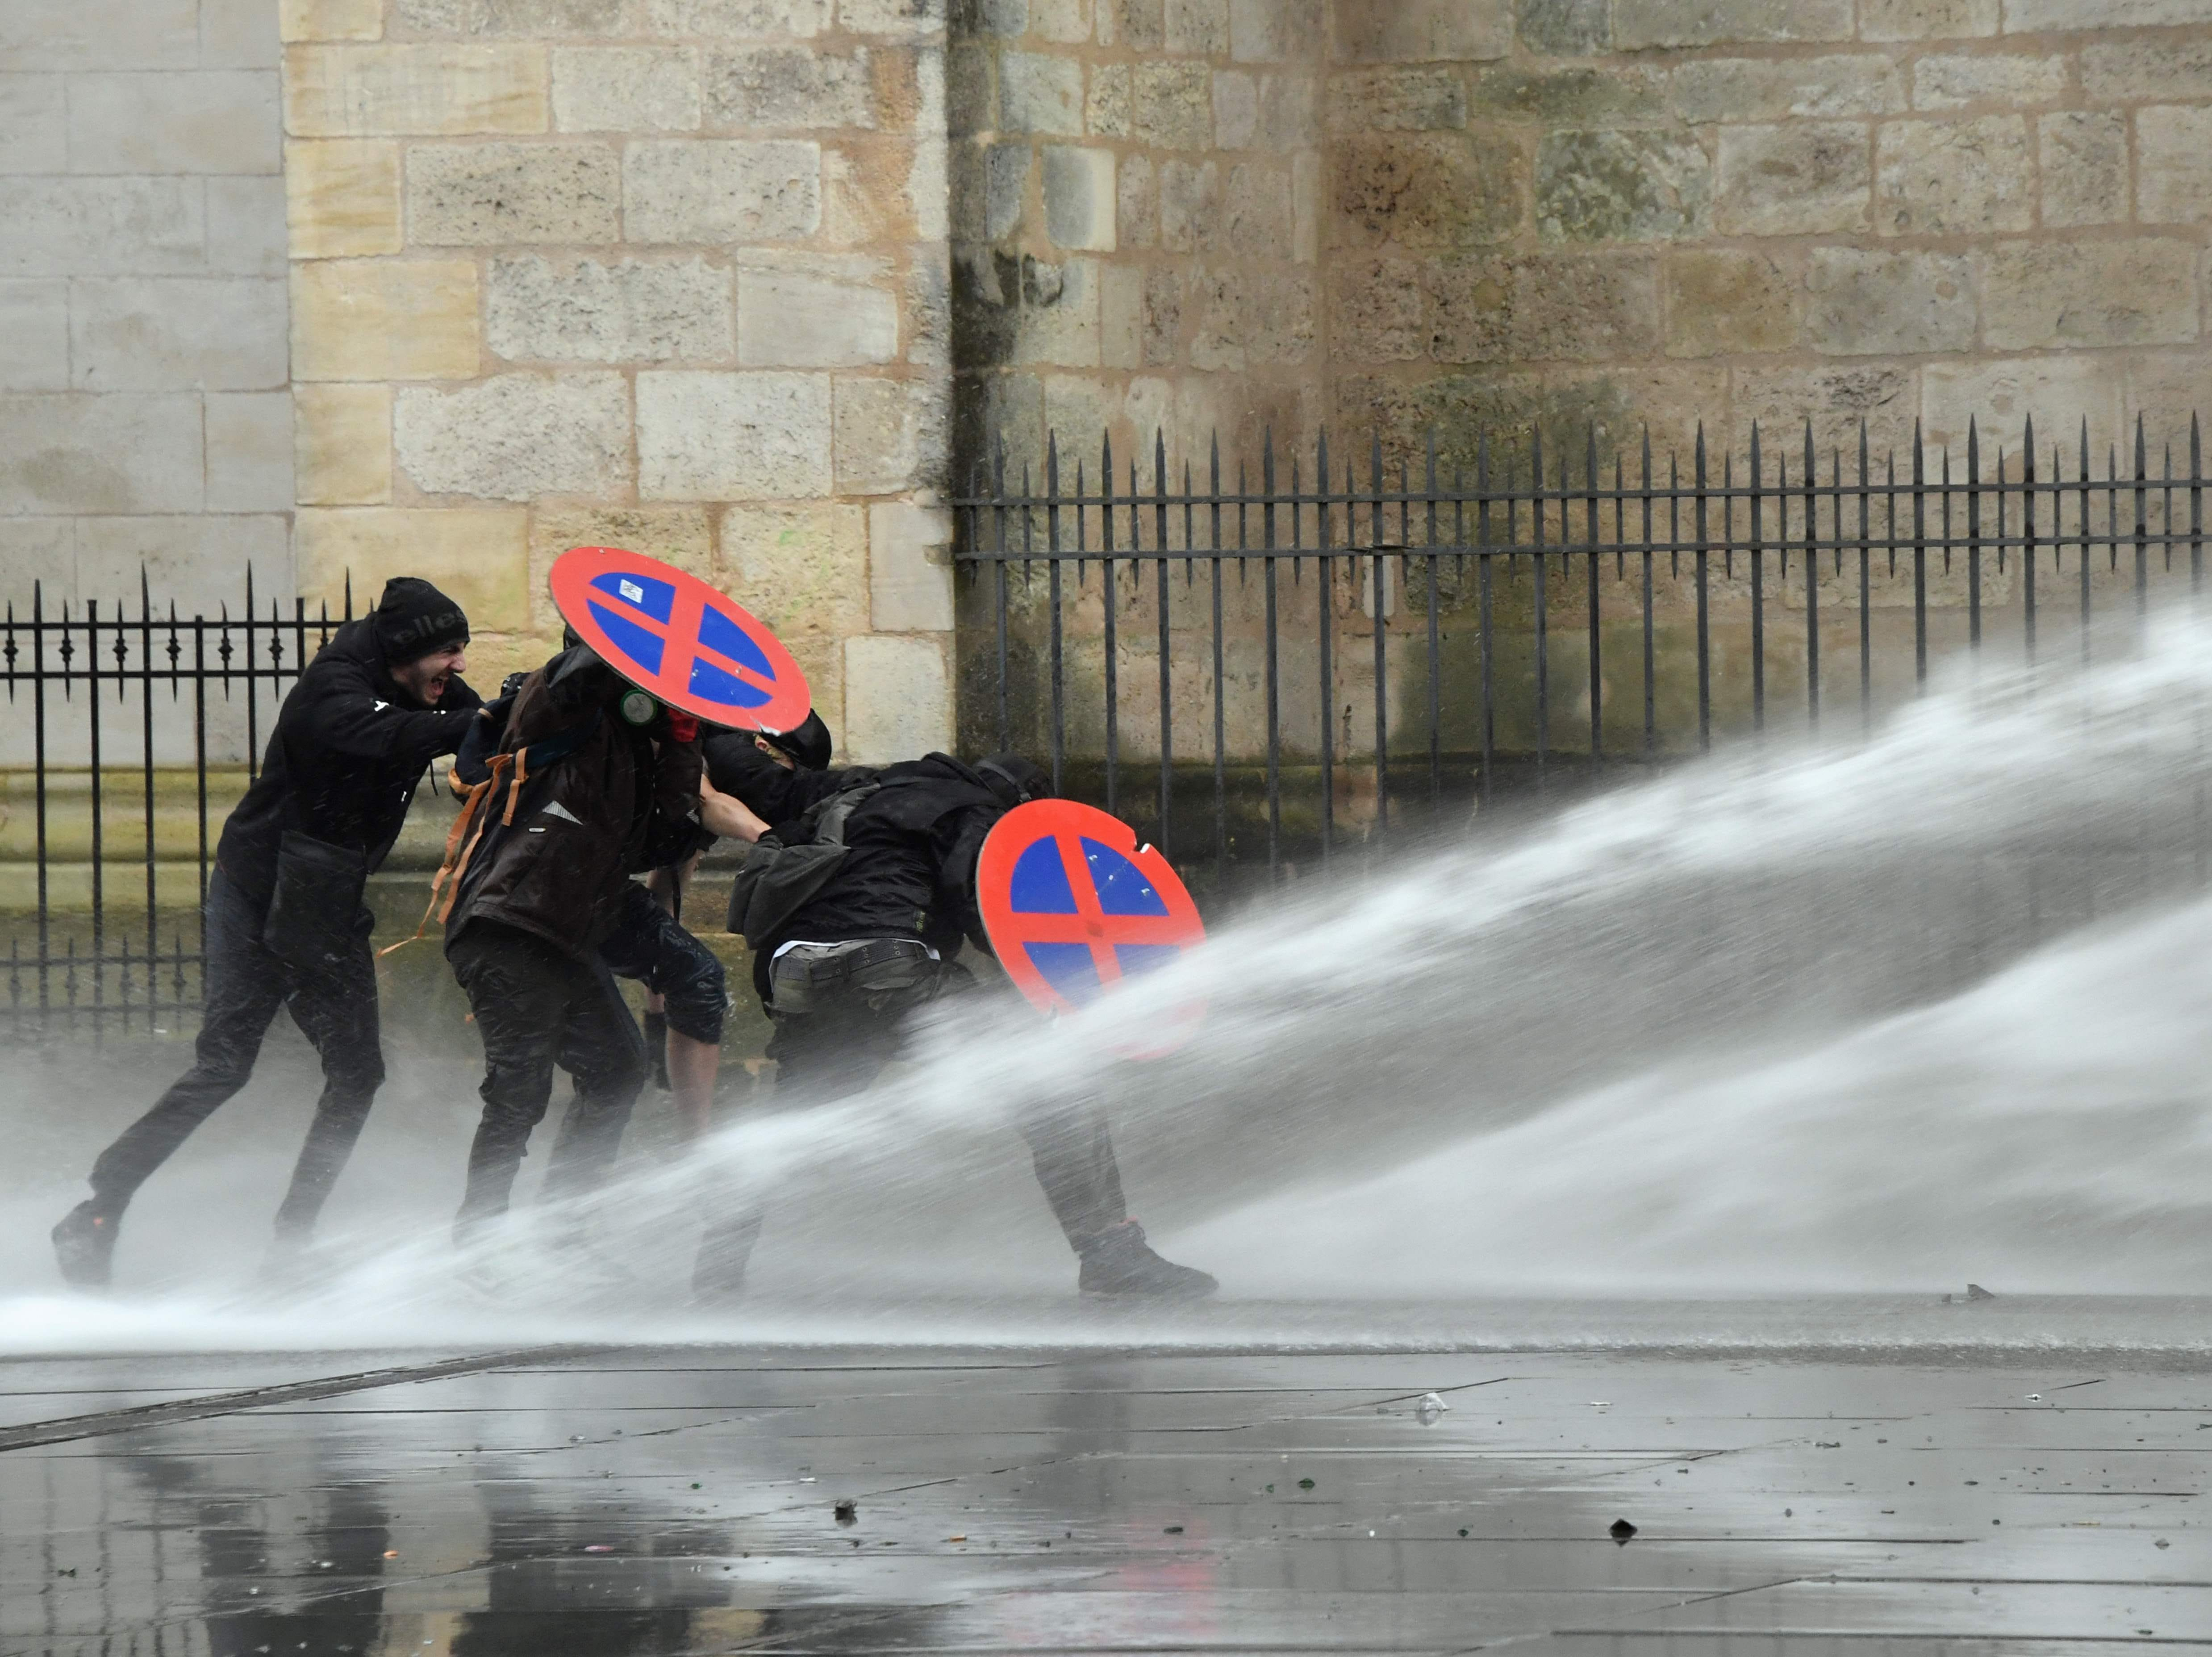 A riot police vehicle uses a water cannon to disperse protesters during a yellow vests (Gilets jaunes) rally, on Feb. 9, 2019 in Bordeaux, during the 13th consecutive Saturday of demonstrations.